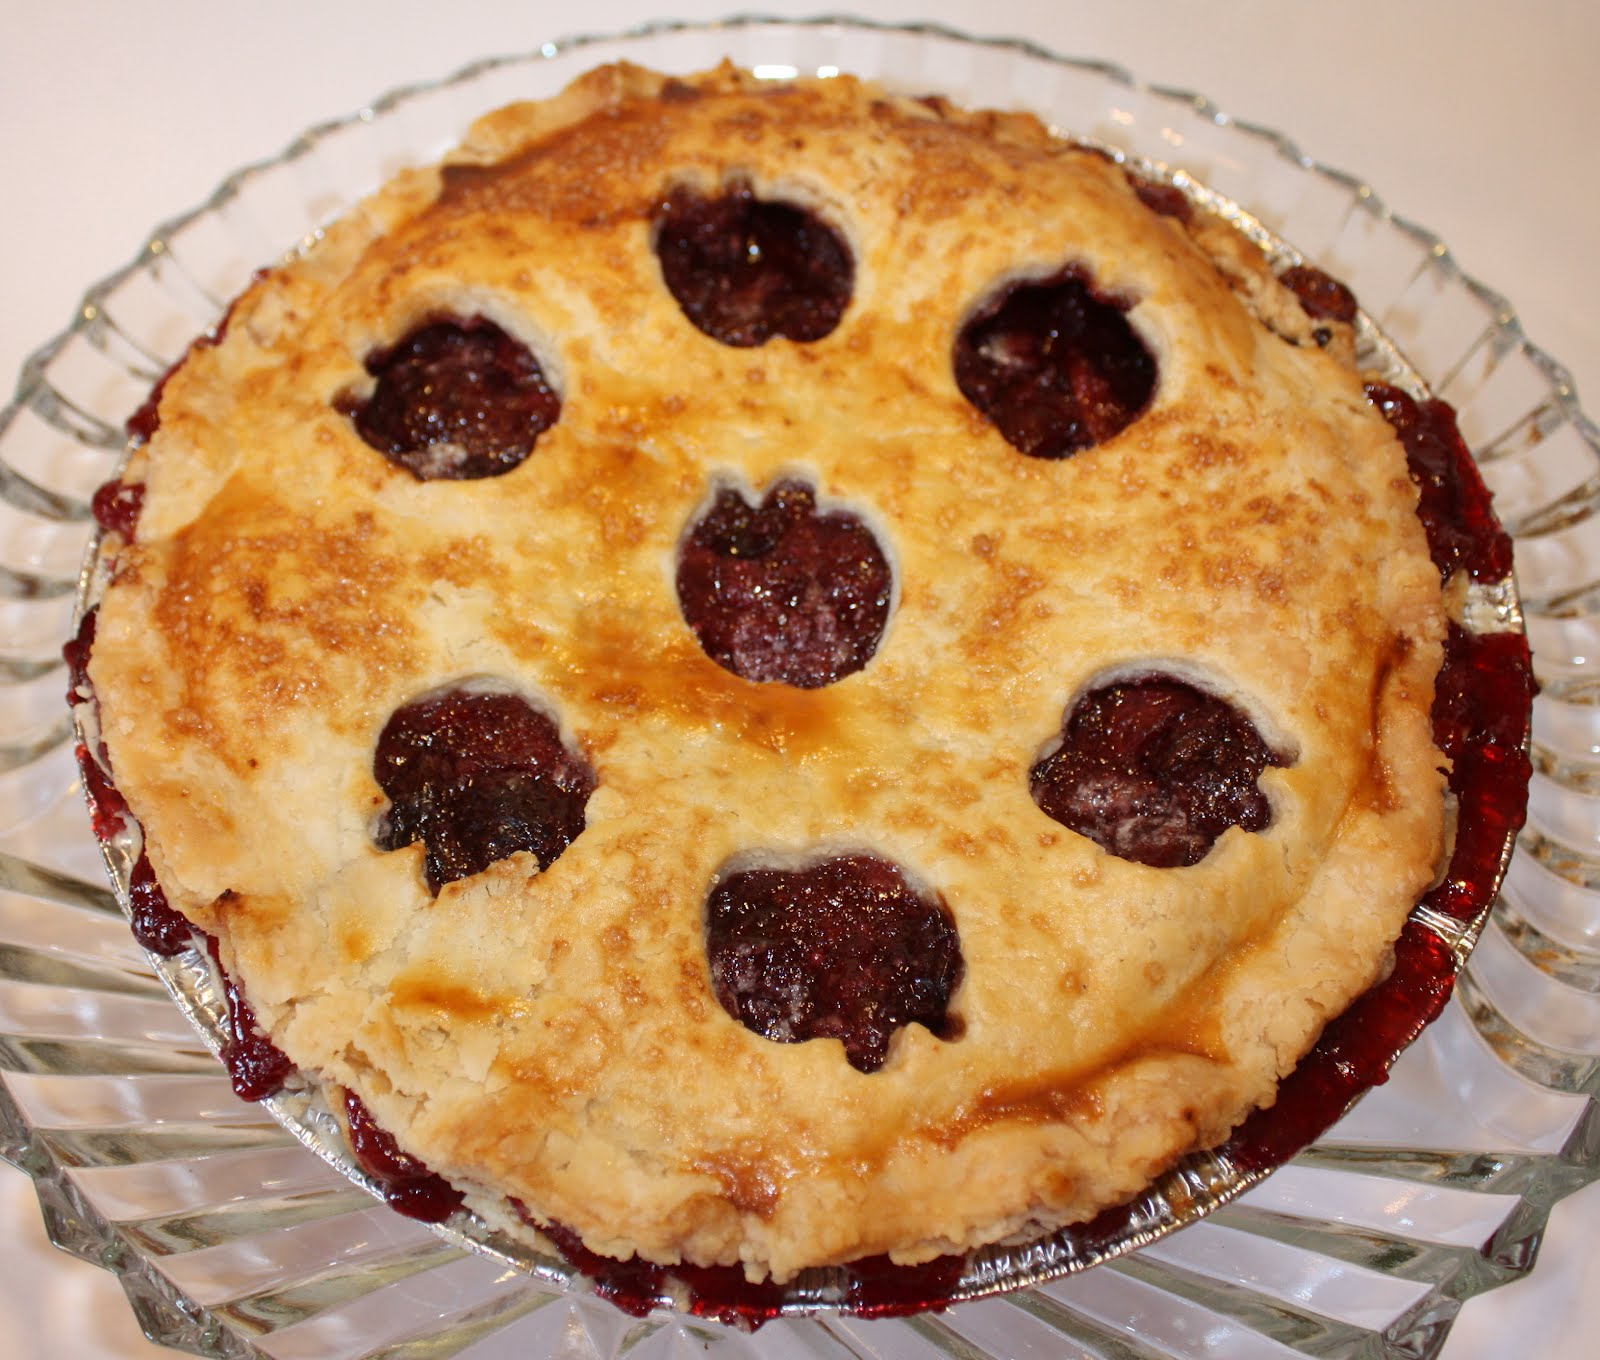 VOILA! Sweet cherry pie! This recipe is from one of my favorite food ...